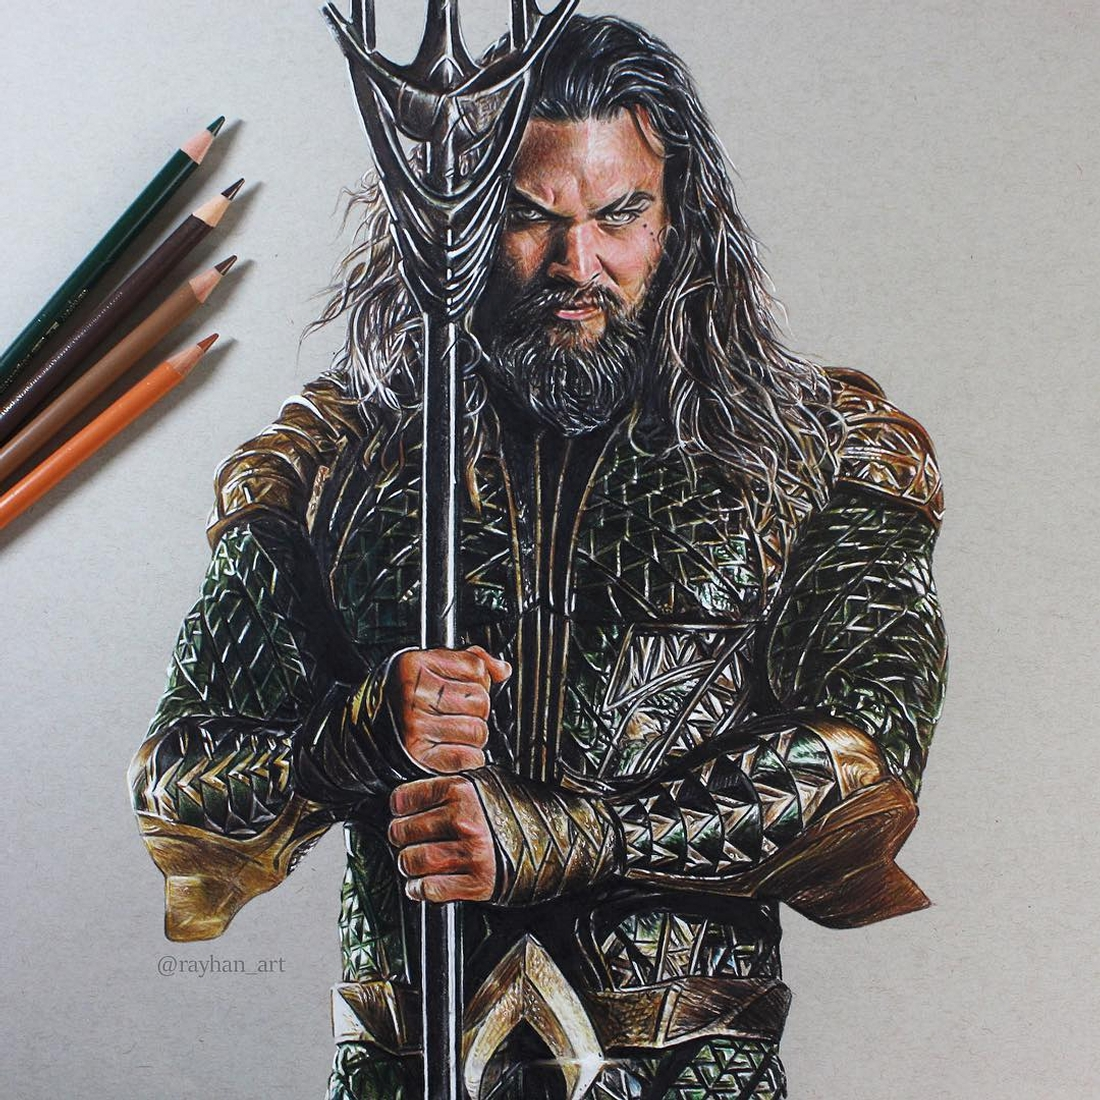 01-Aquaman-Jason-Momoa-Rayhan-Miah-Movie-Characters-Drawings-and-More-www-designstack-co